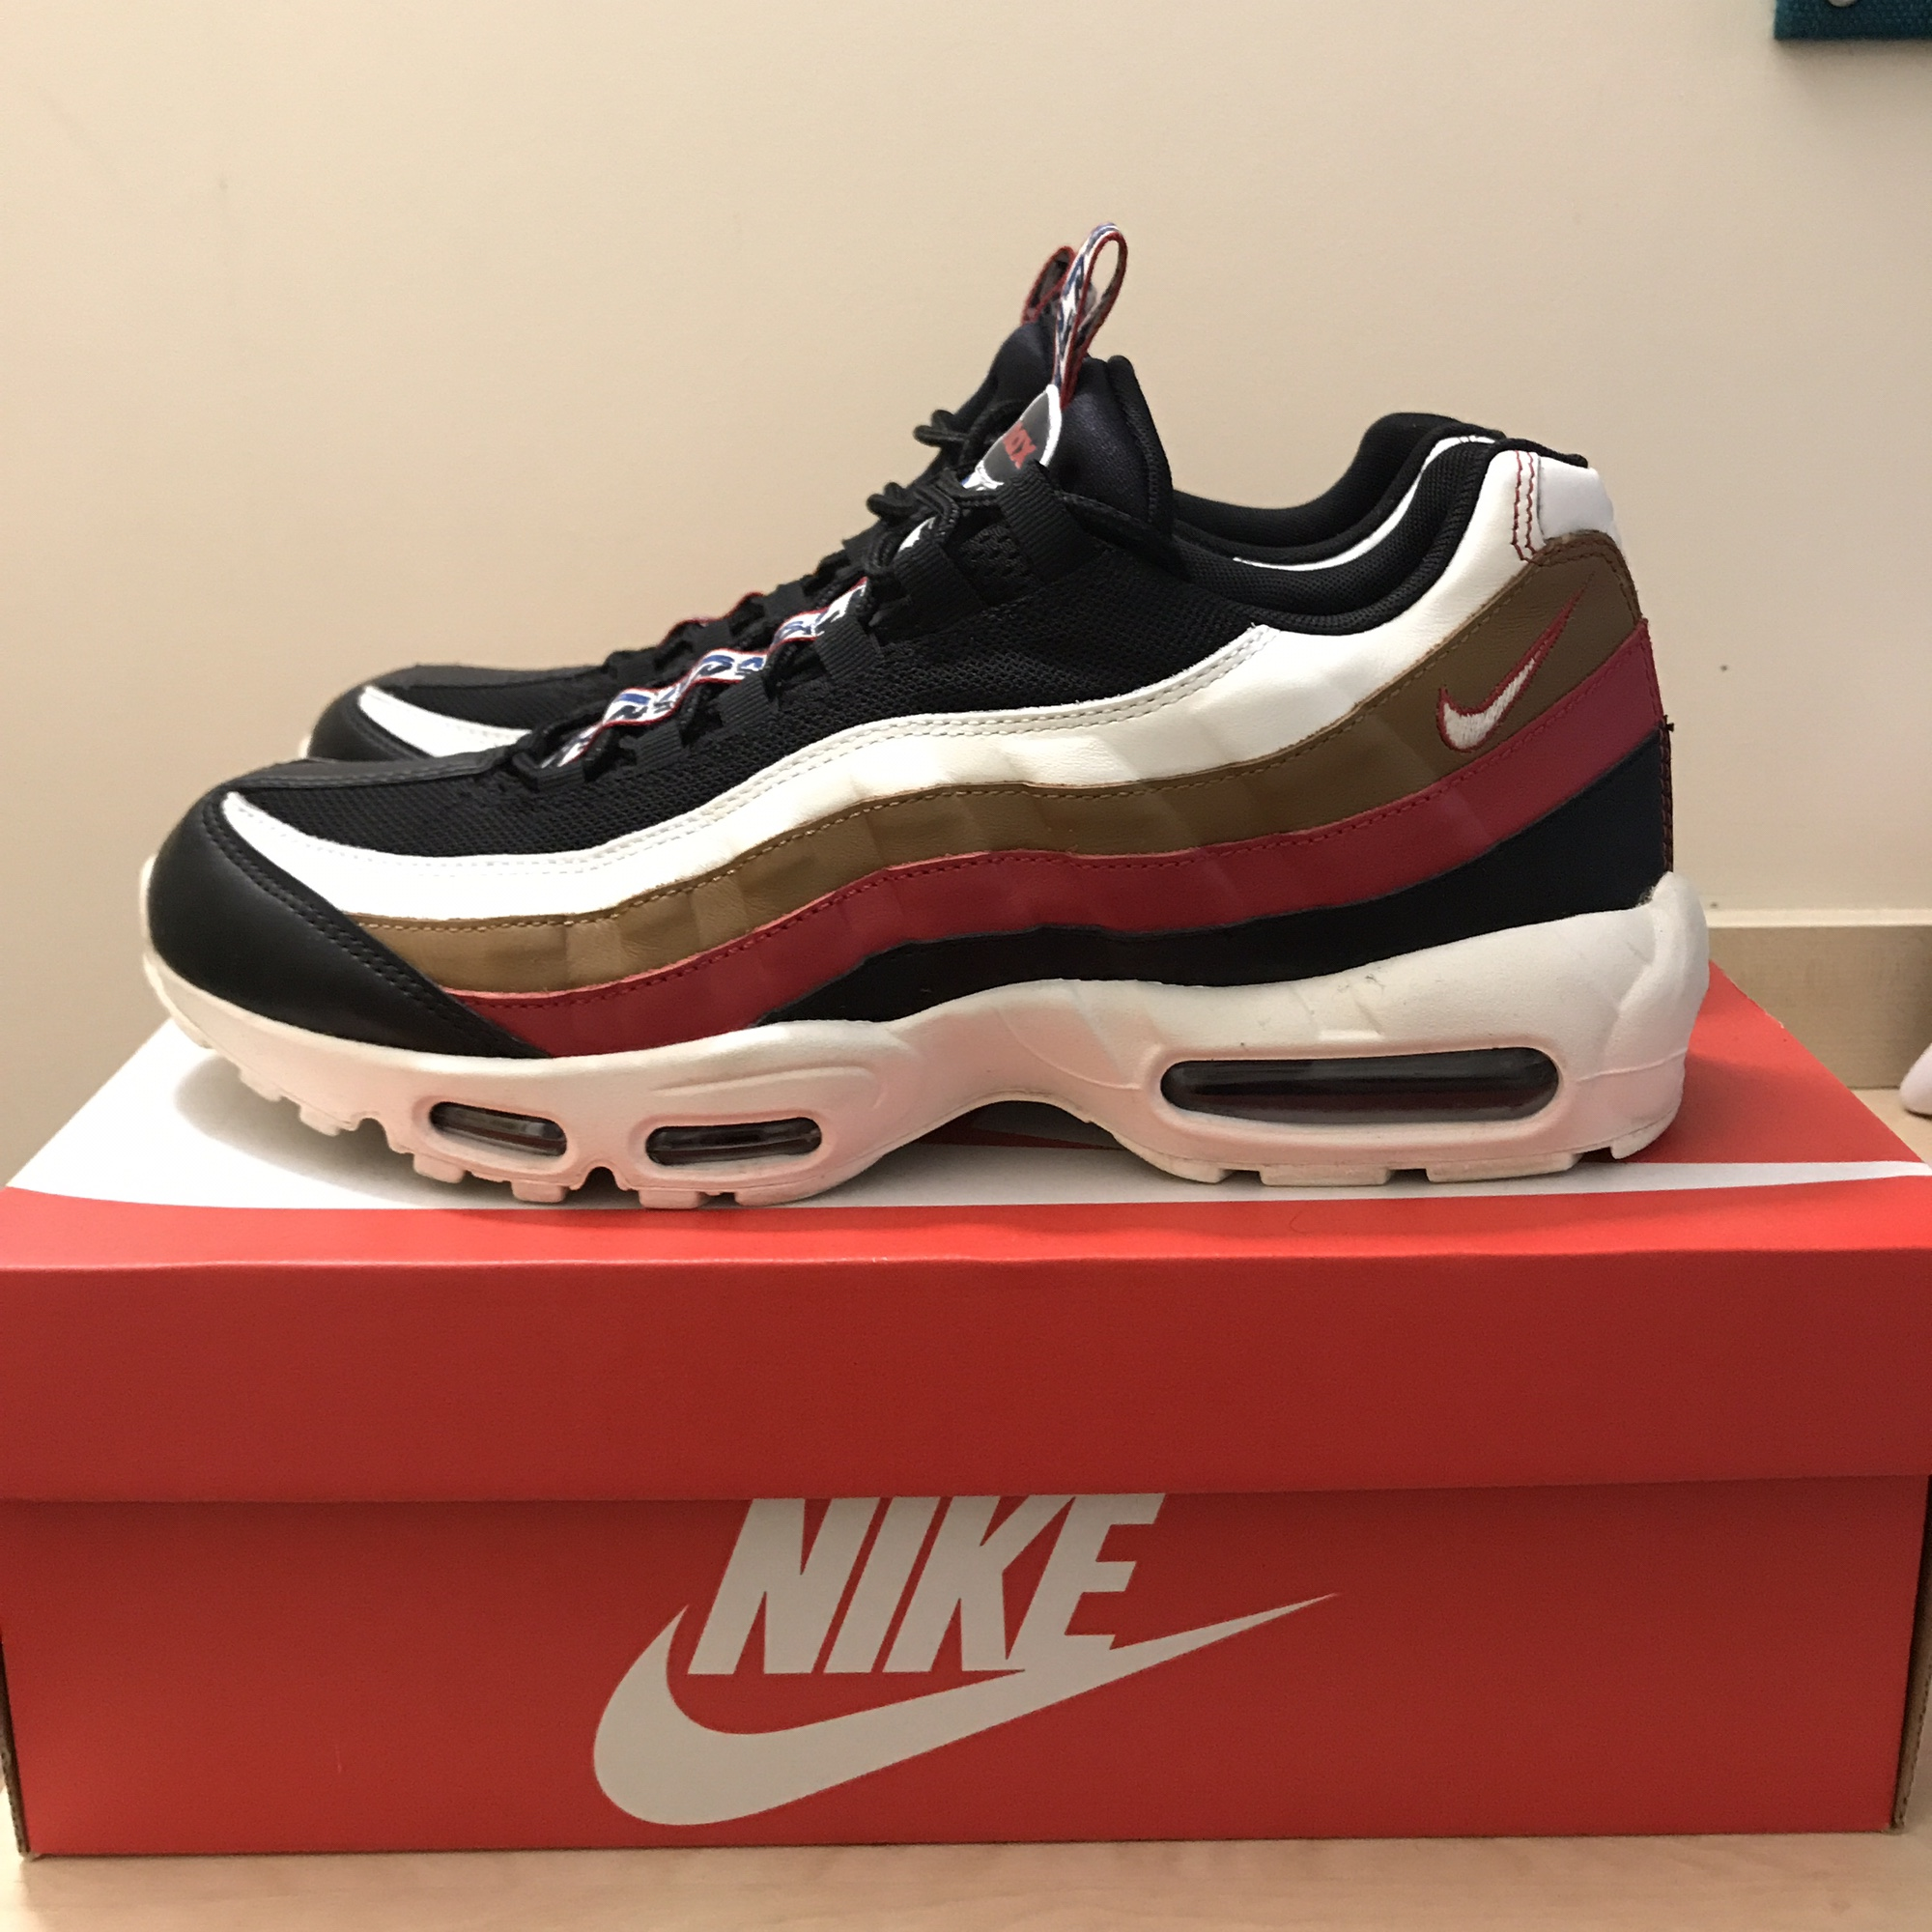 10426fded4 @mattsantos99. last year. Sheffield, United Kingdom. Nike Air Max 95 Taped  UK Size 11. Worn only a couple ...